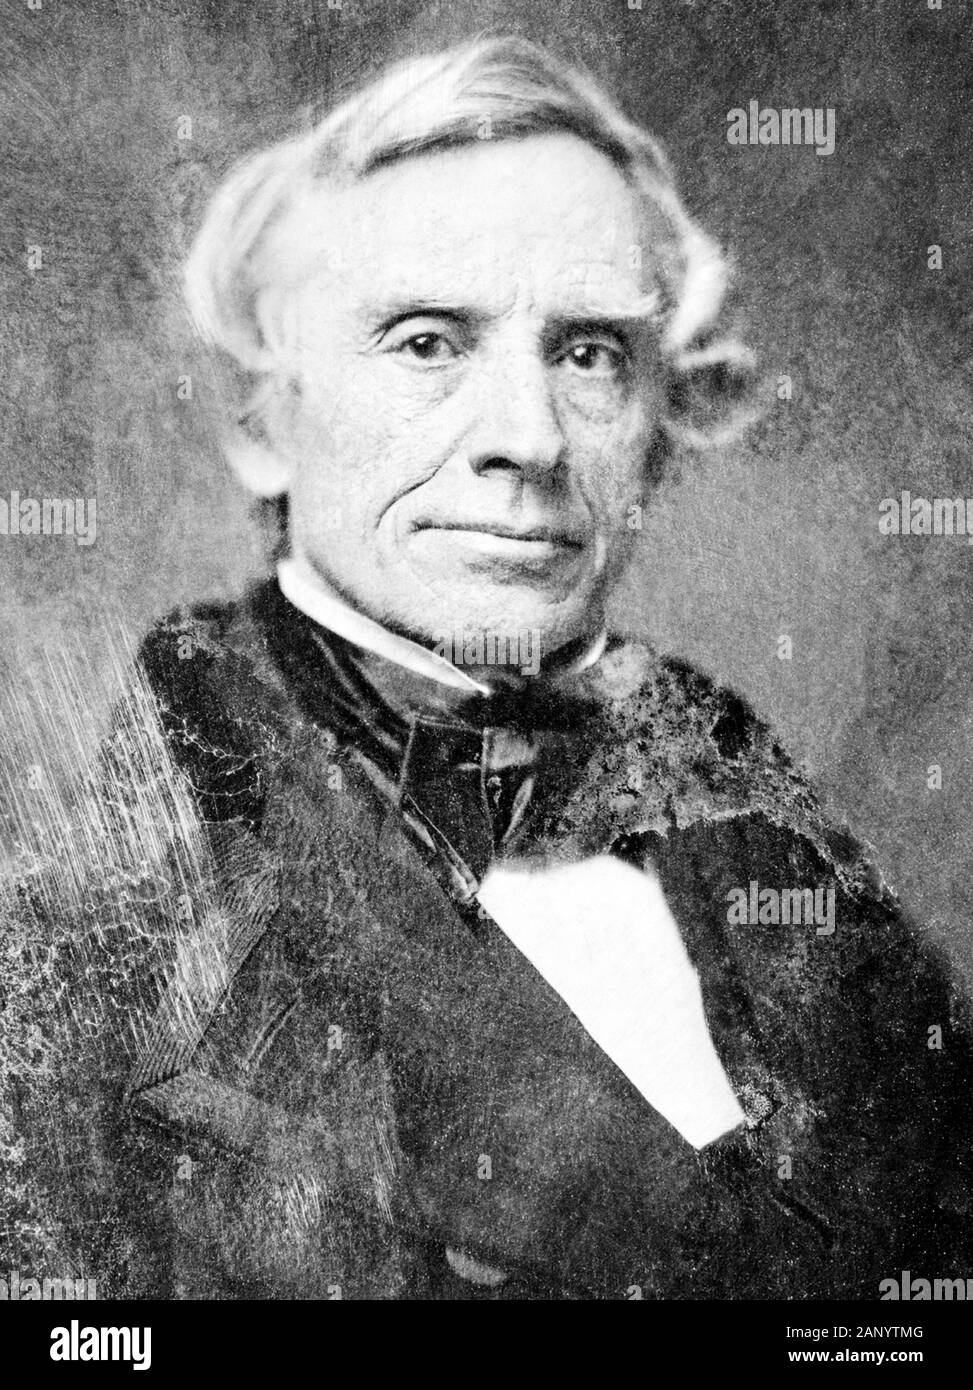 Vintage portrait photo of American painter and inventor Samuel F B Morse (1791 – 1872) – a pioneer in the development of the electric telegraph and co-creator of Morse Code. Photo circa 1850 by Mathew B Brady. Stock Photo